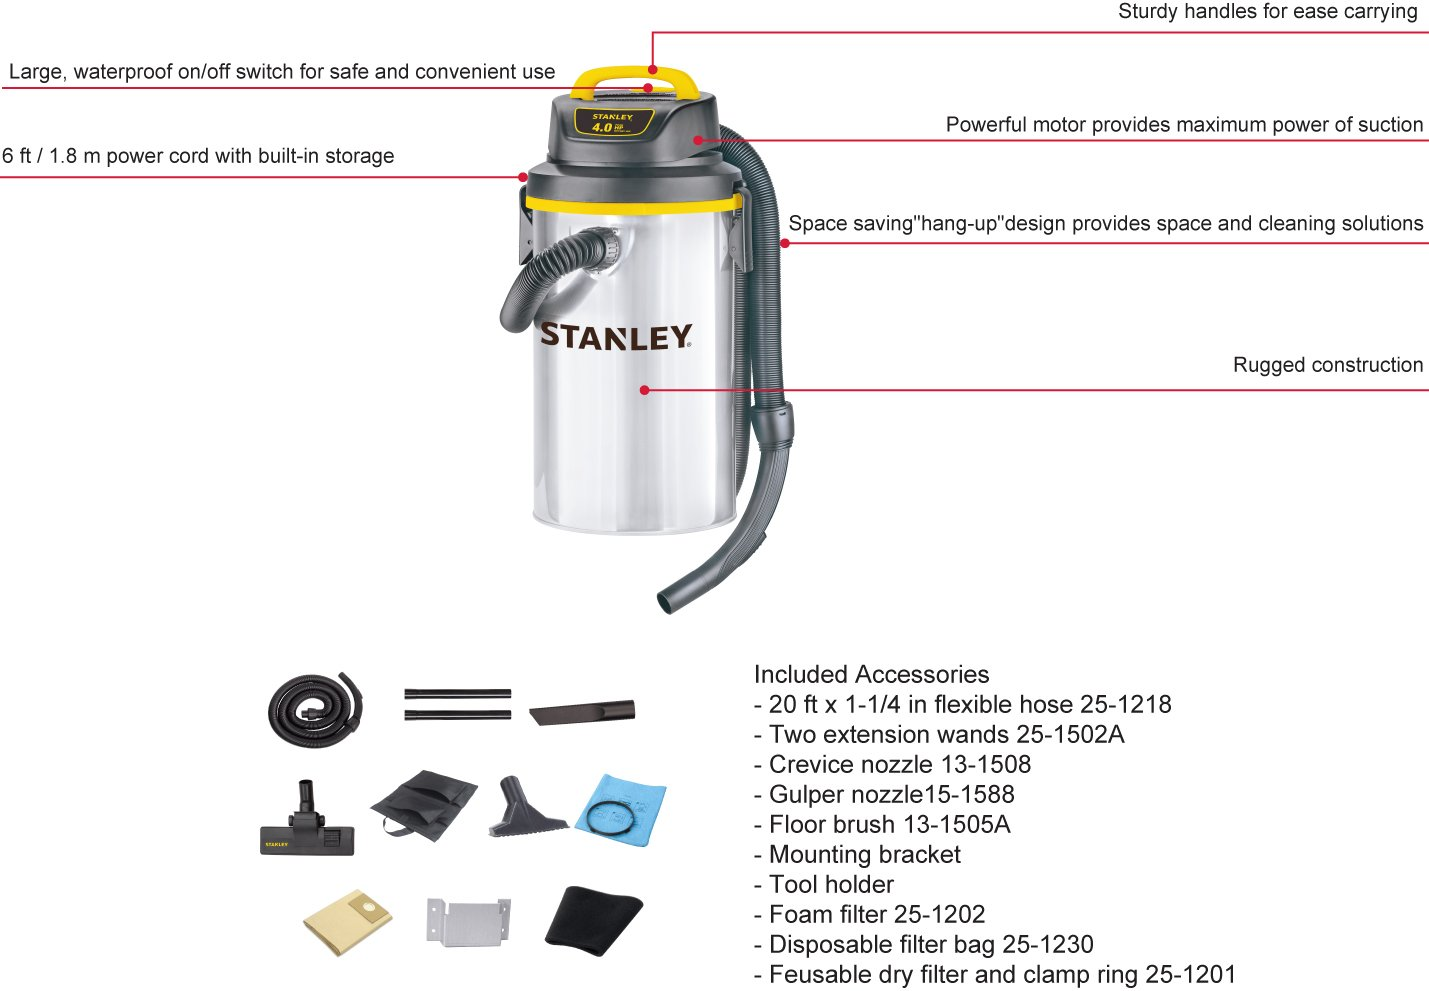 Stanley Wet Dry Hanging Vacuum, 4.5 Gallon, 4 Horsepower, Stainless Steel Tank